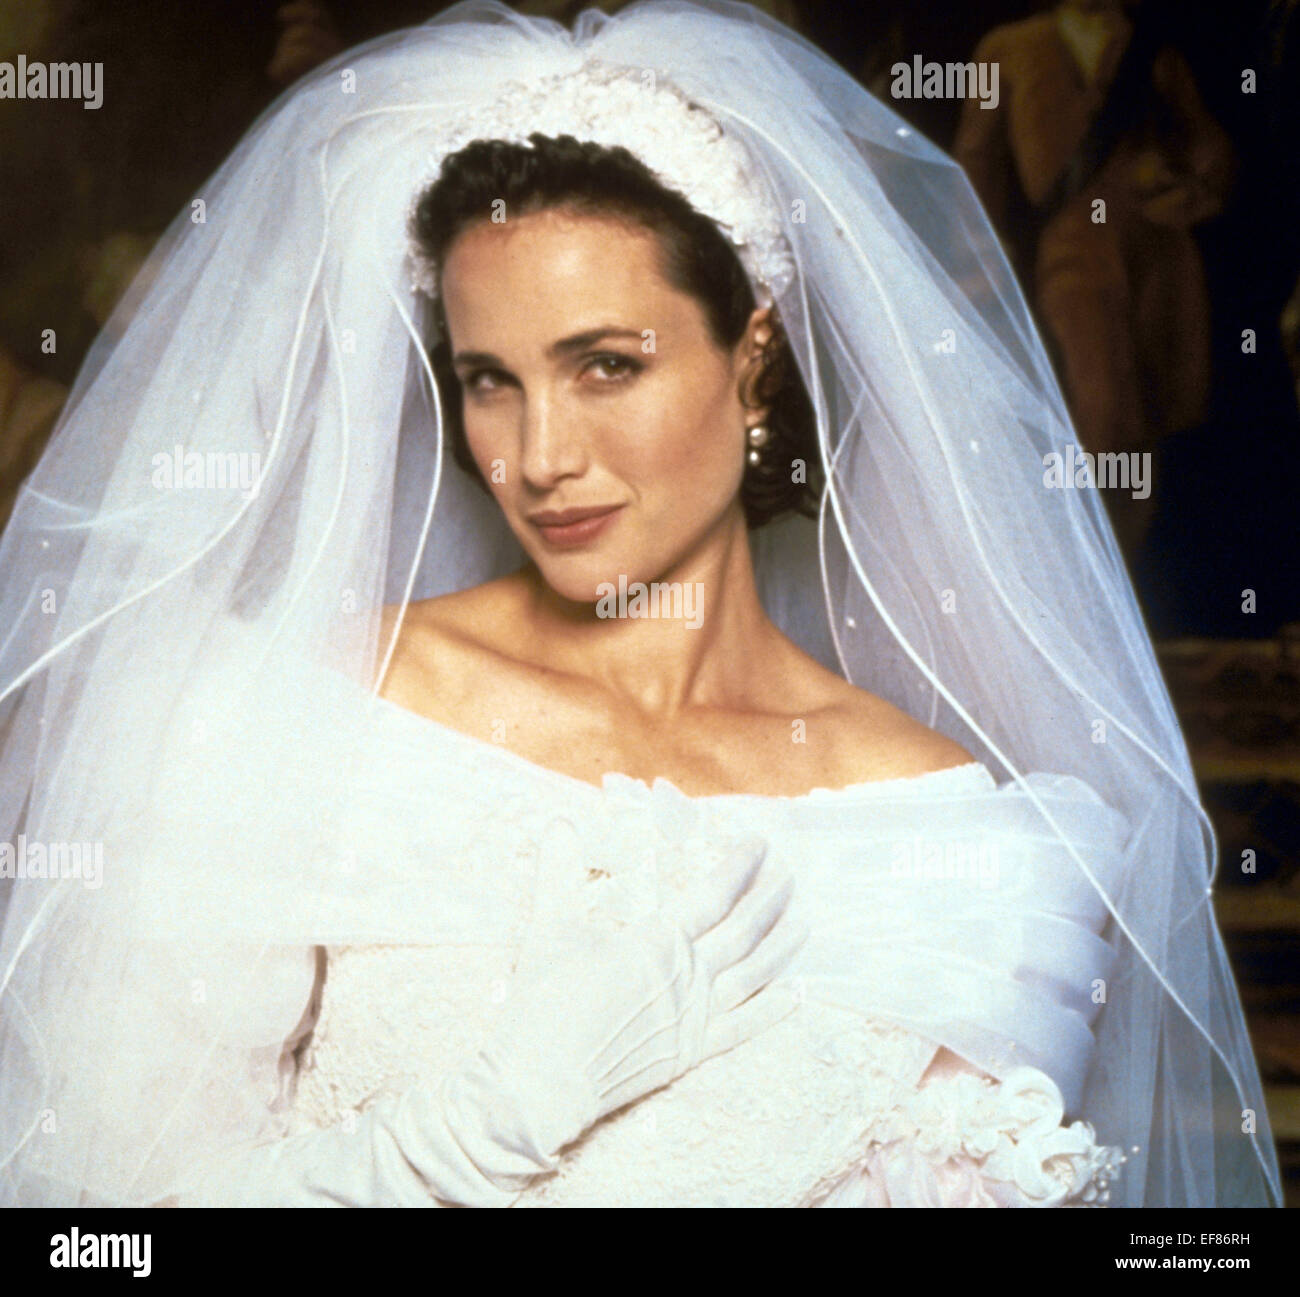 Four Weddings: ANDIE MACDOWELL FOUR WEDDINGS AND A FUNERAL (1994 Stock